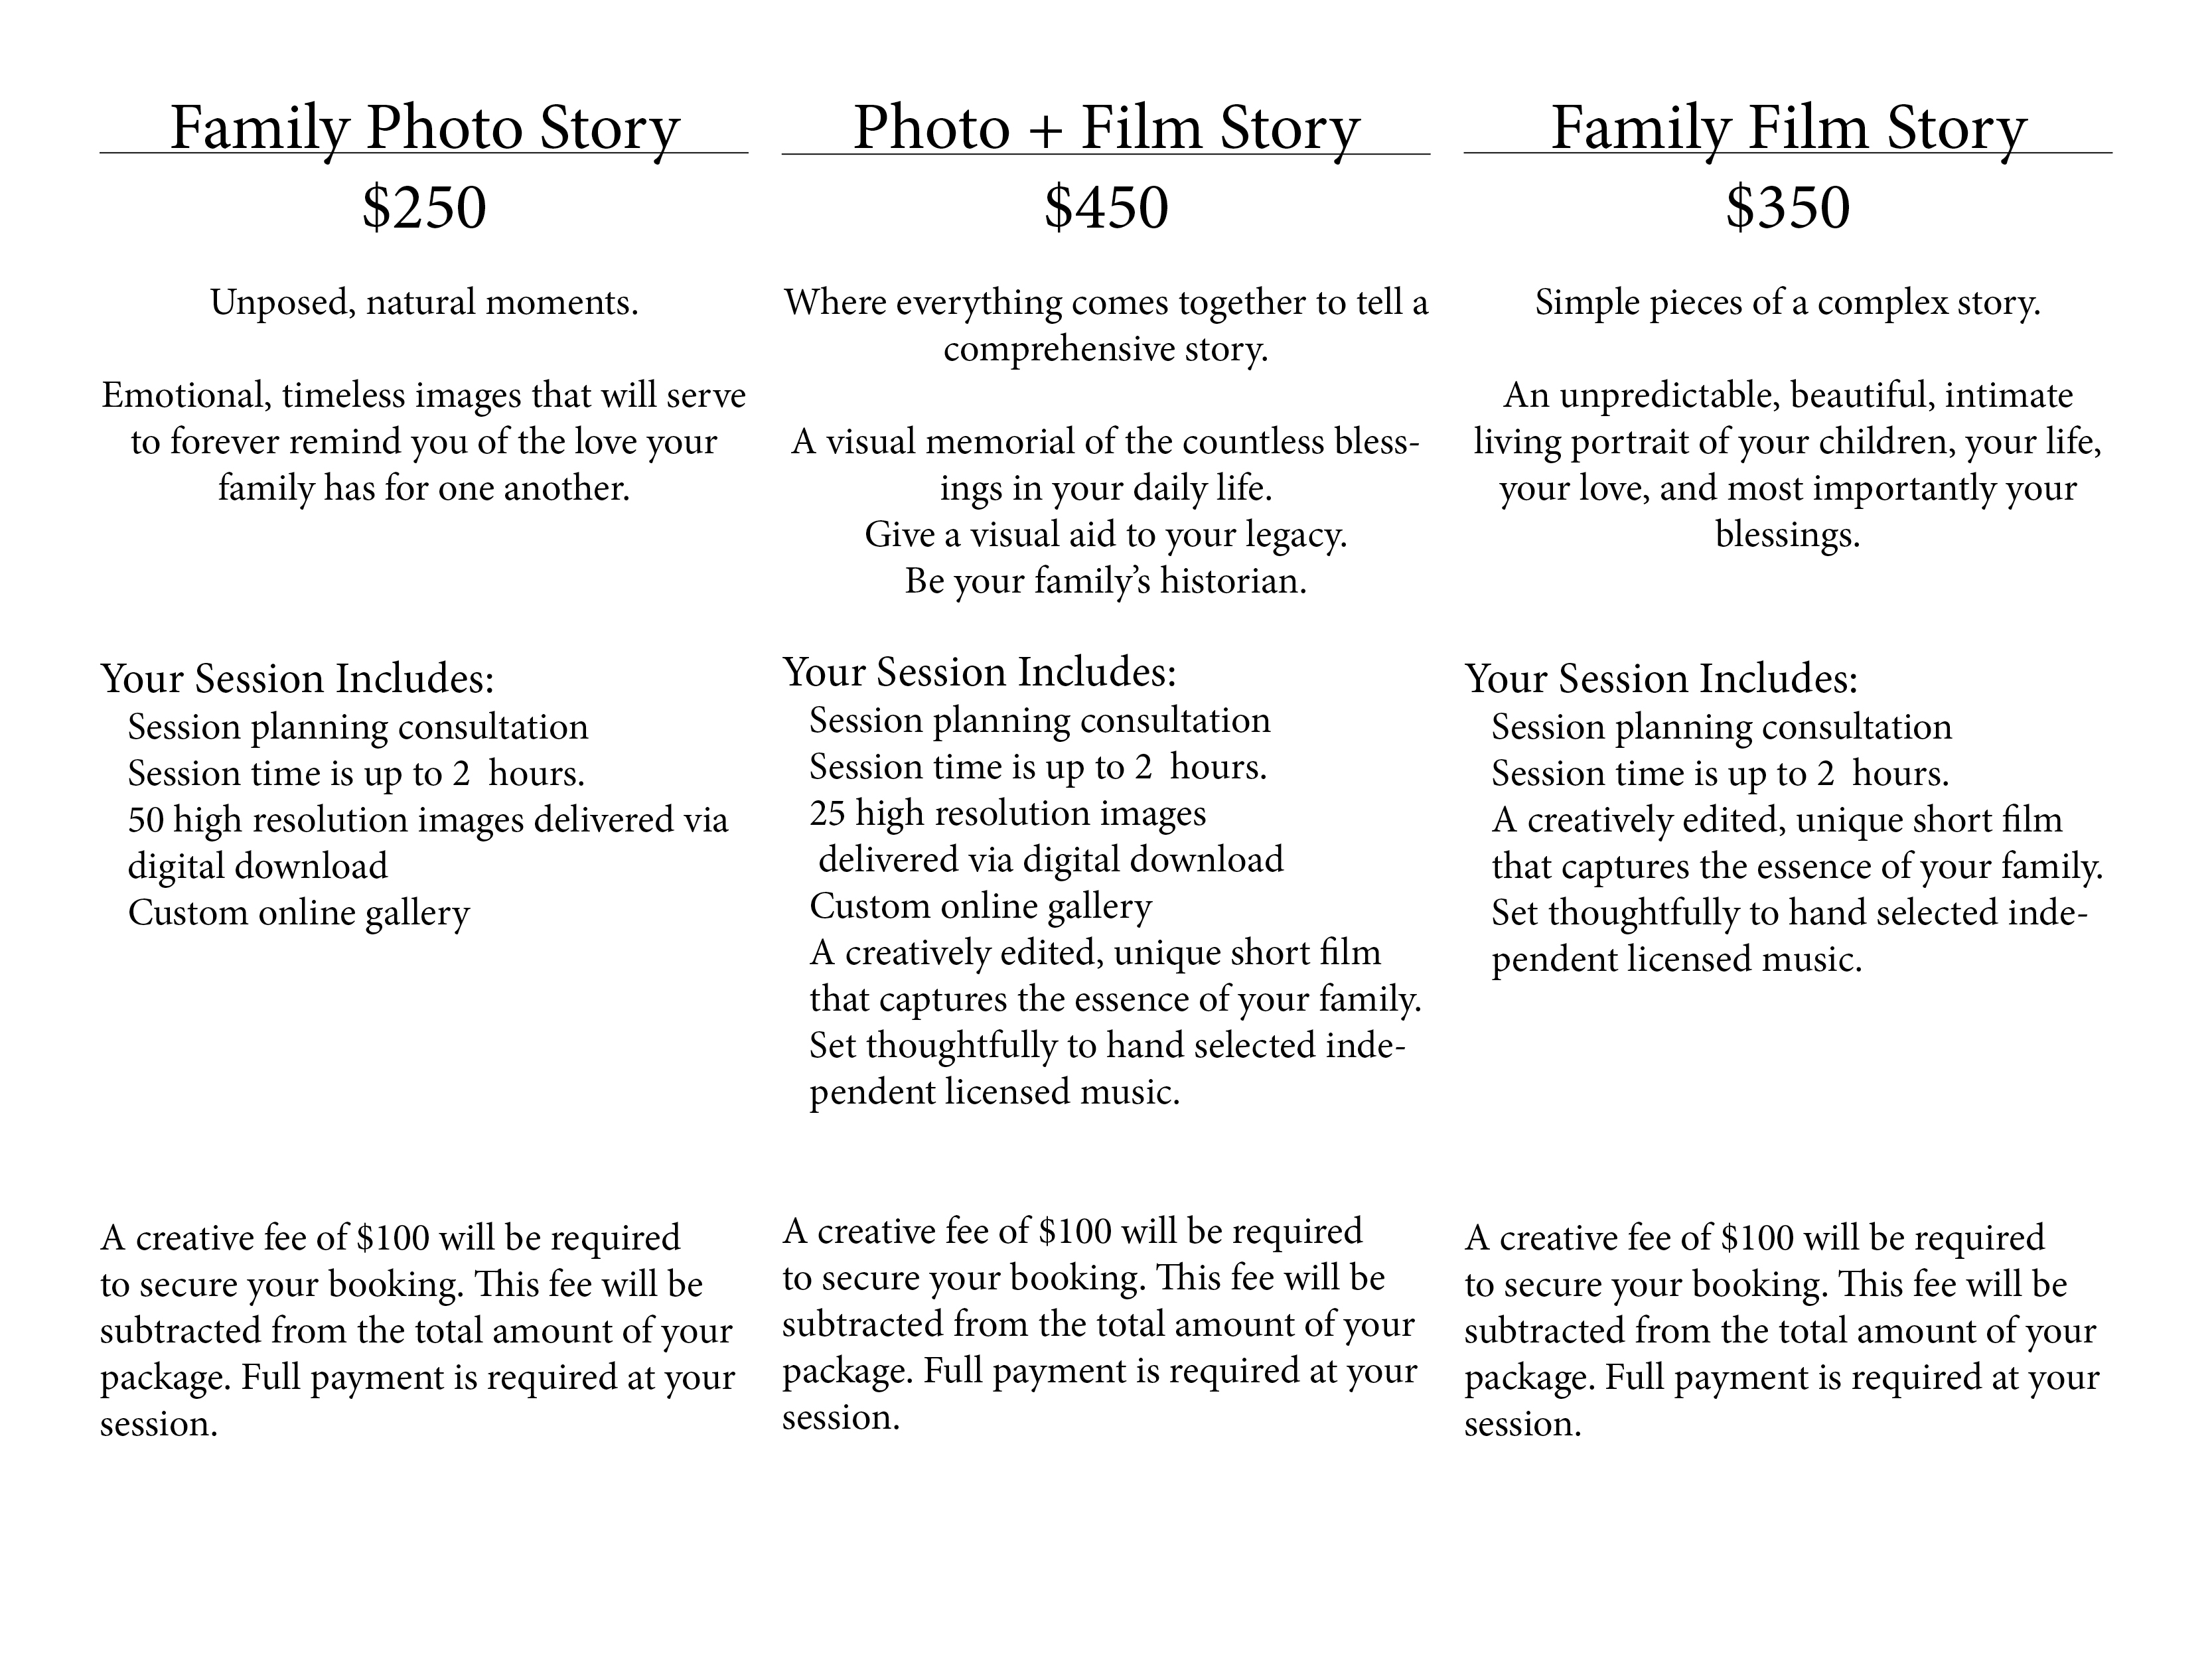 Family Photo and Film Story Investment Board